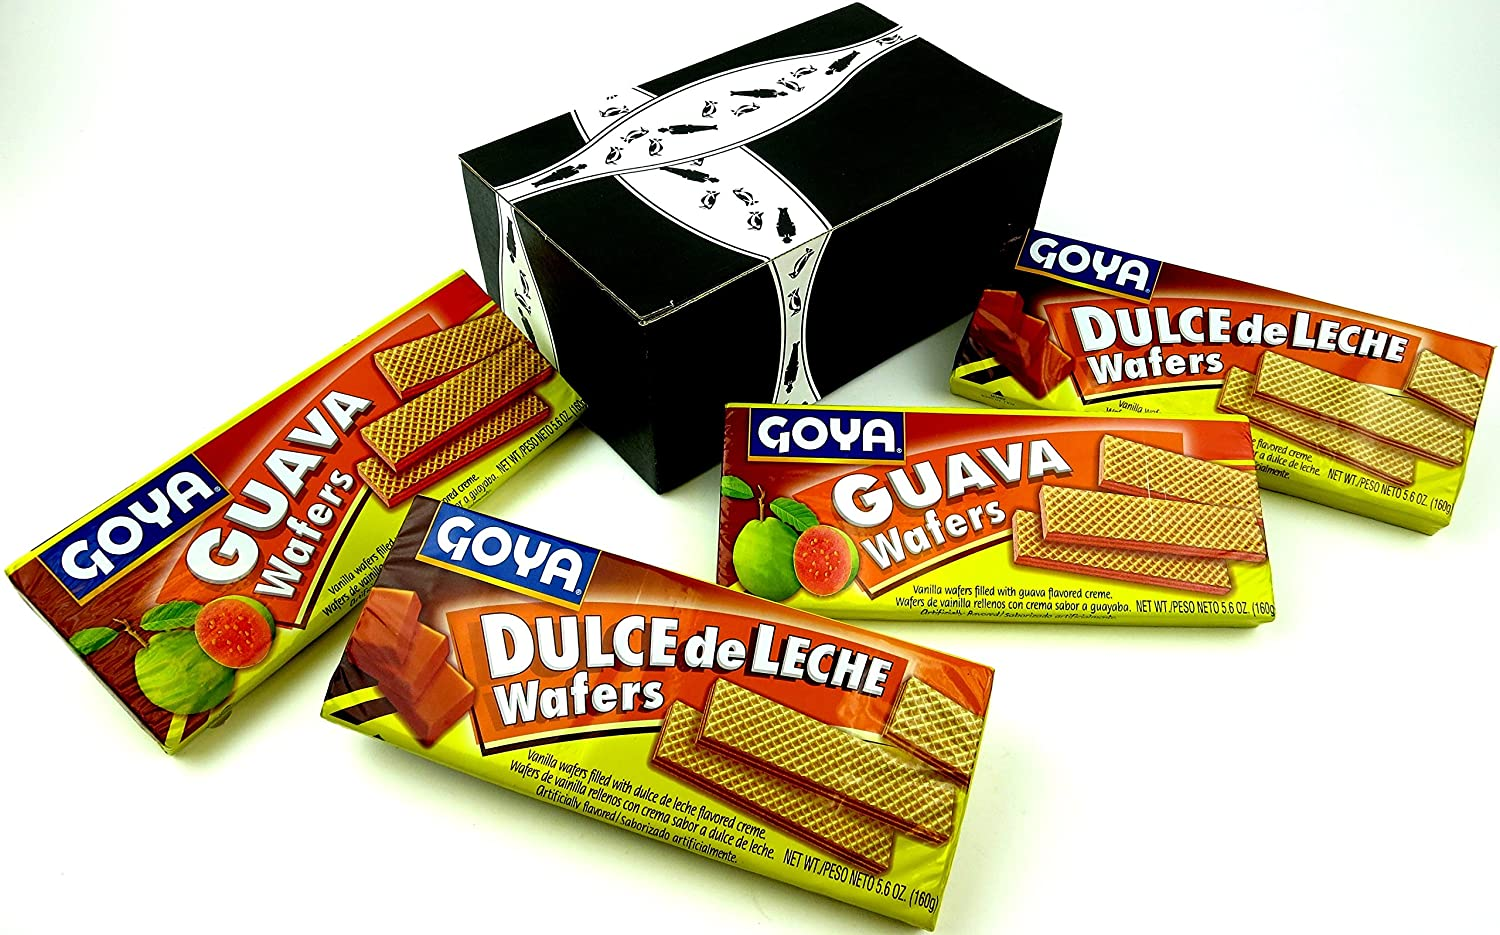 Amazon.com : Goya Wafers 2-Flavor Variety: Two 5.6 oz Packages Each of Guava and Dulce de Leche in a Gift Box : Grocery & Gourmet Food